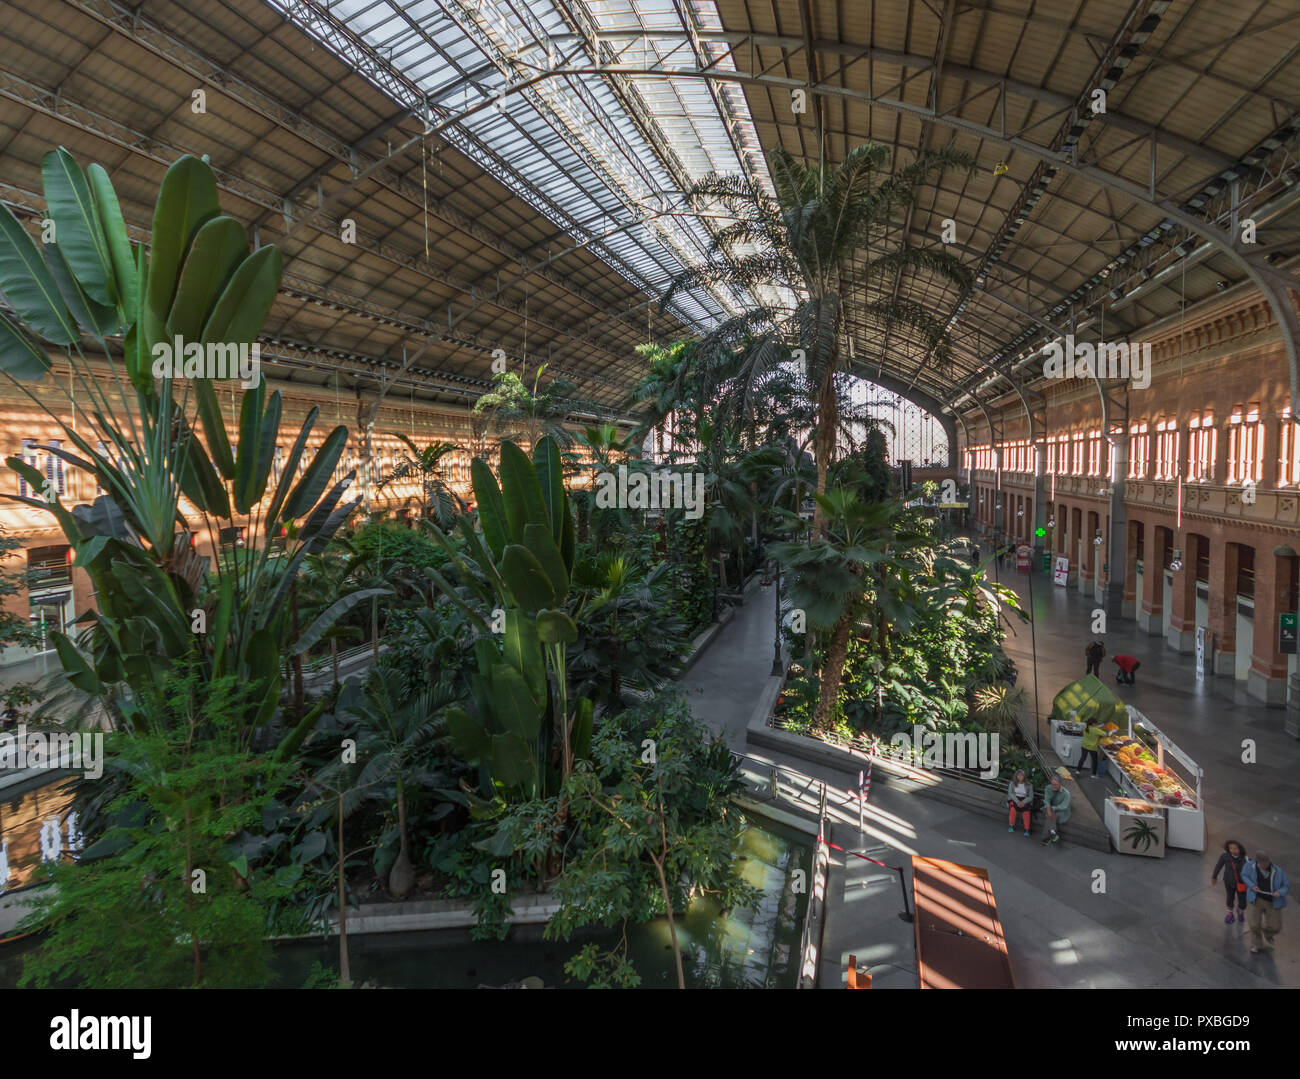 Devastated by the 2004 bombings, the Atocha Train Station, in Madrid, is today known for its inner tropical garden - Stock Image